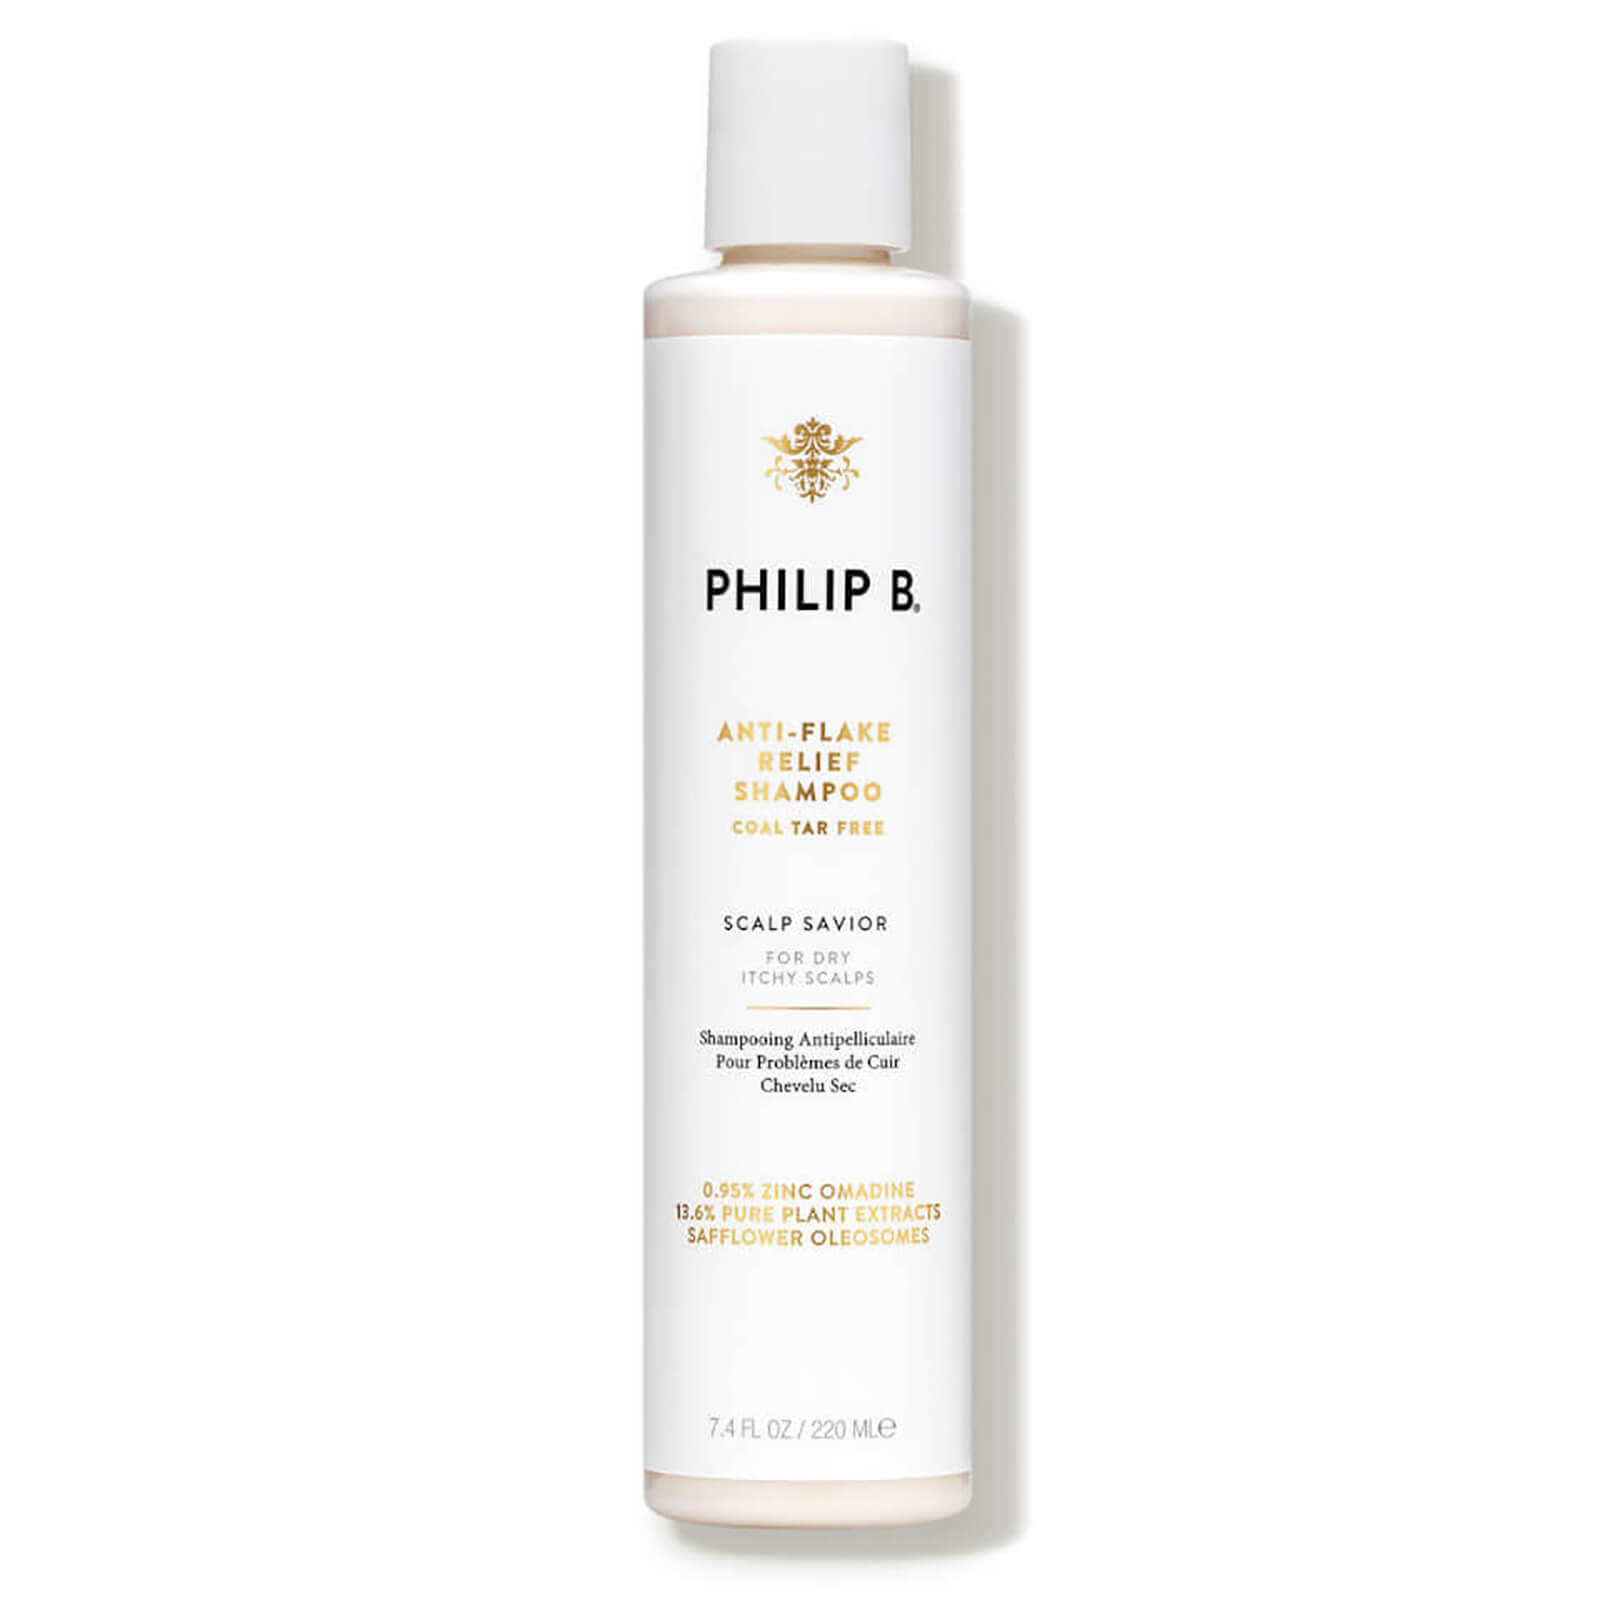 Watch a story about PHILIP B ANTI-FLAKE RELIEF SHAMPOO (220ML)